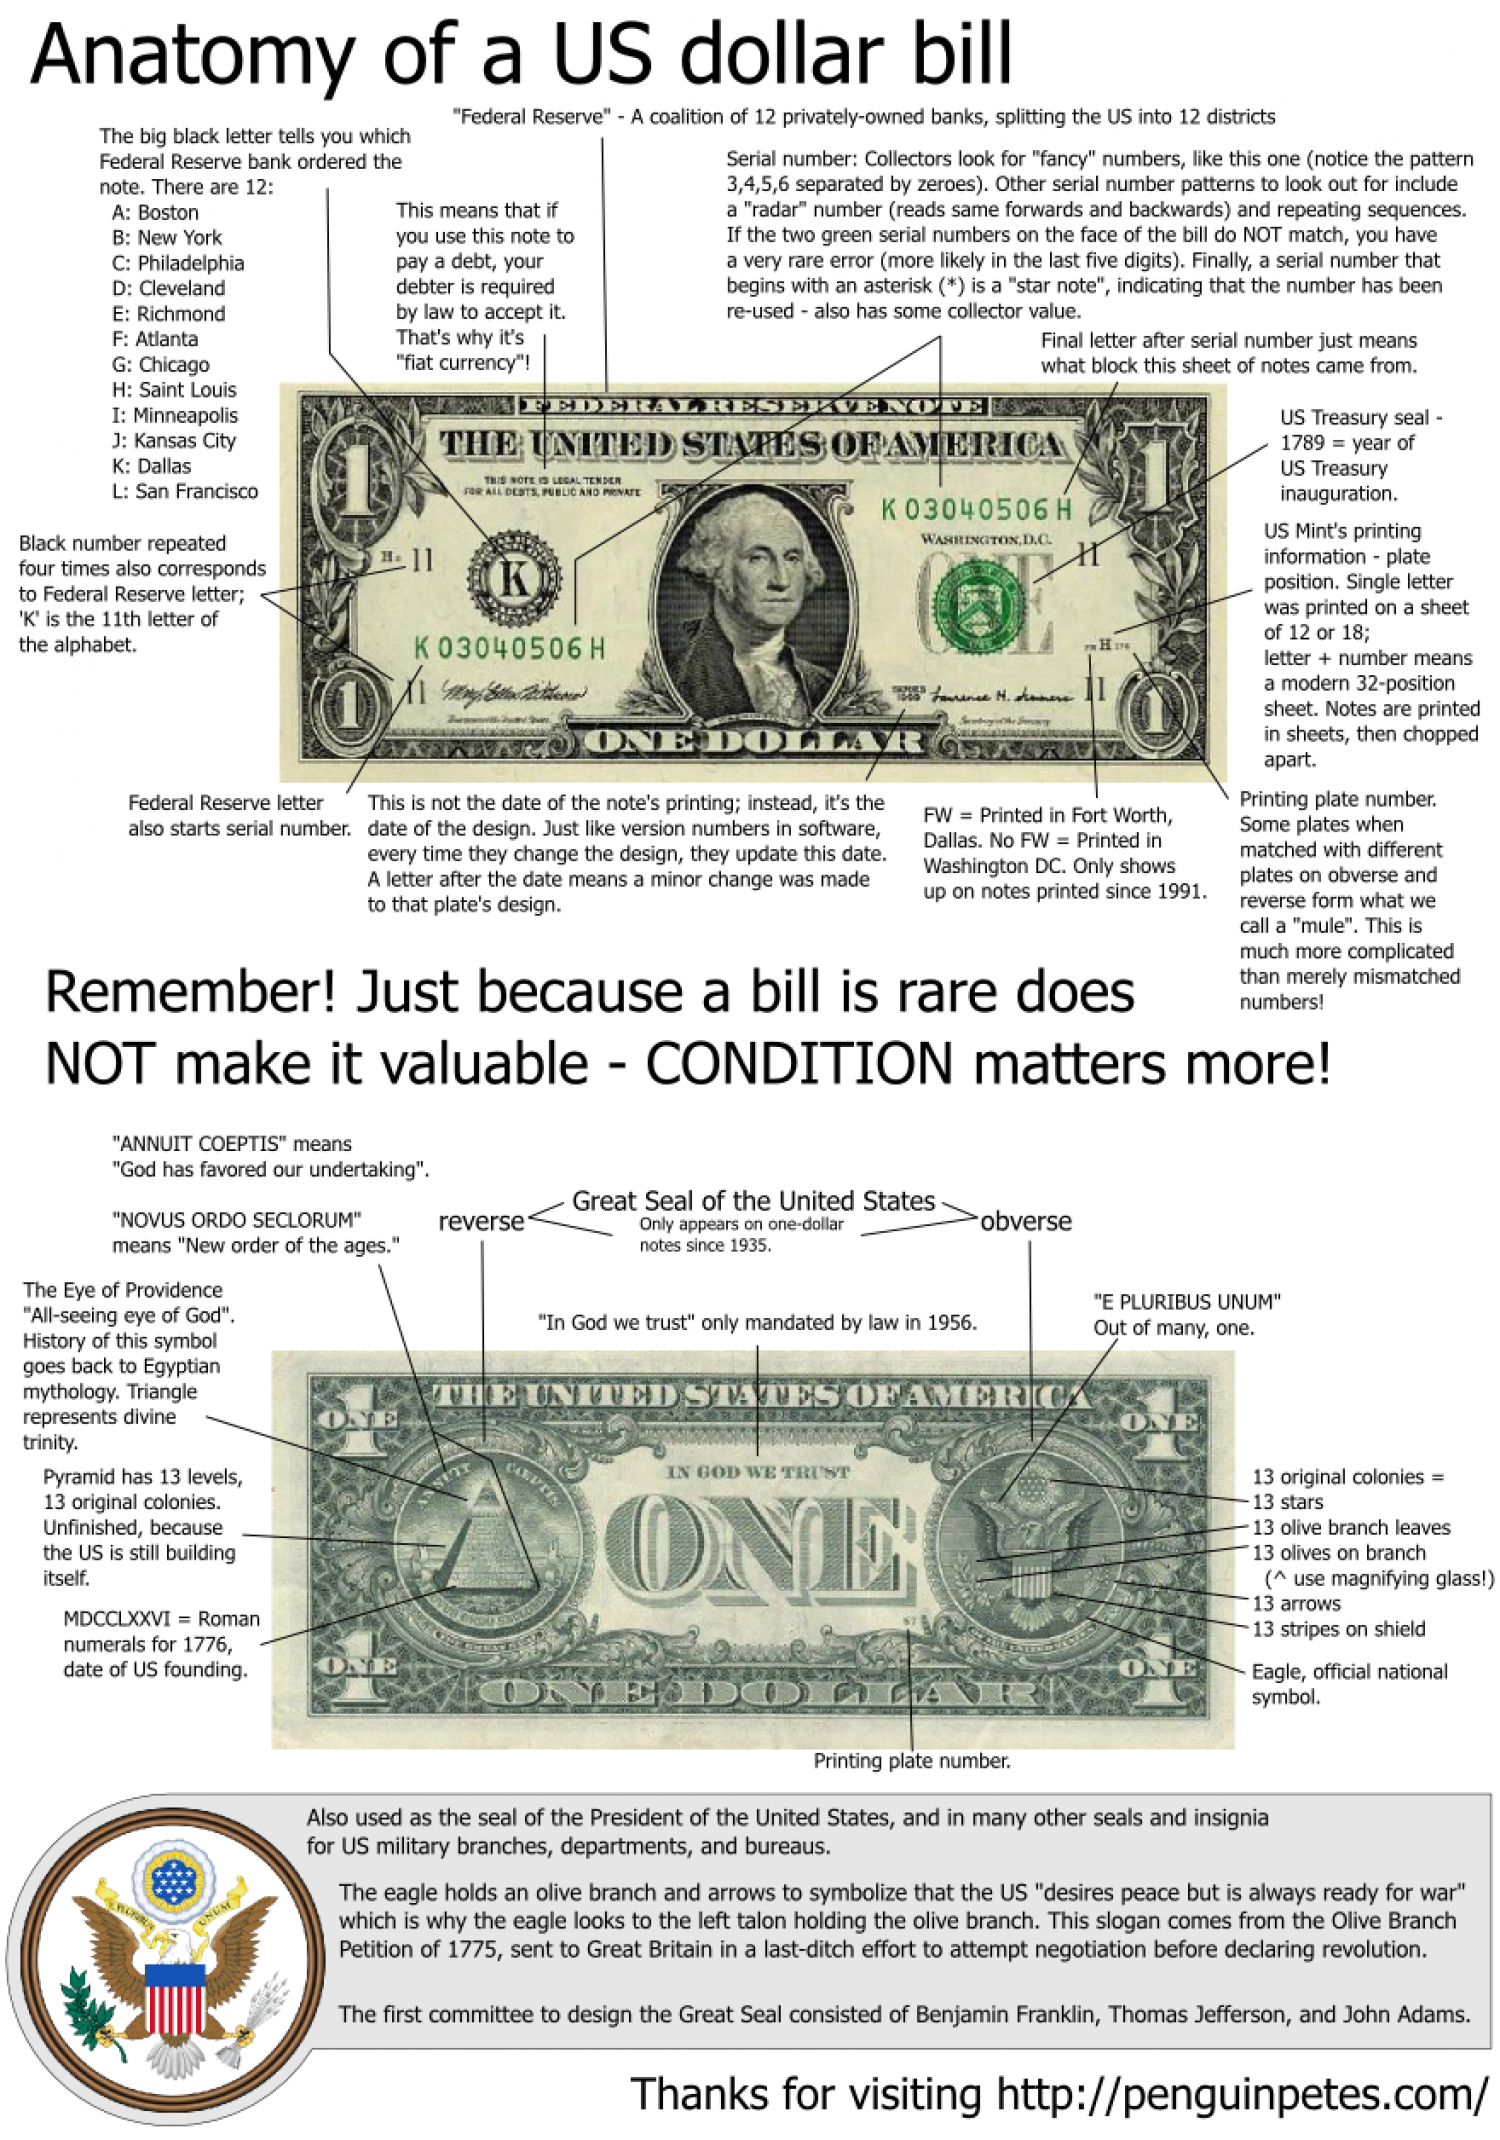 Anatomy of a us dollar bill visual anatomy of a us dollar bill infographic biocorpaavc Images